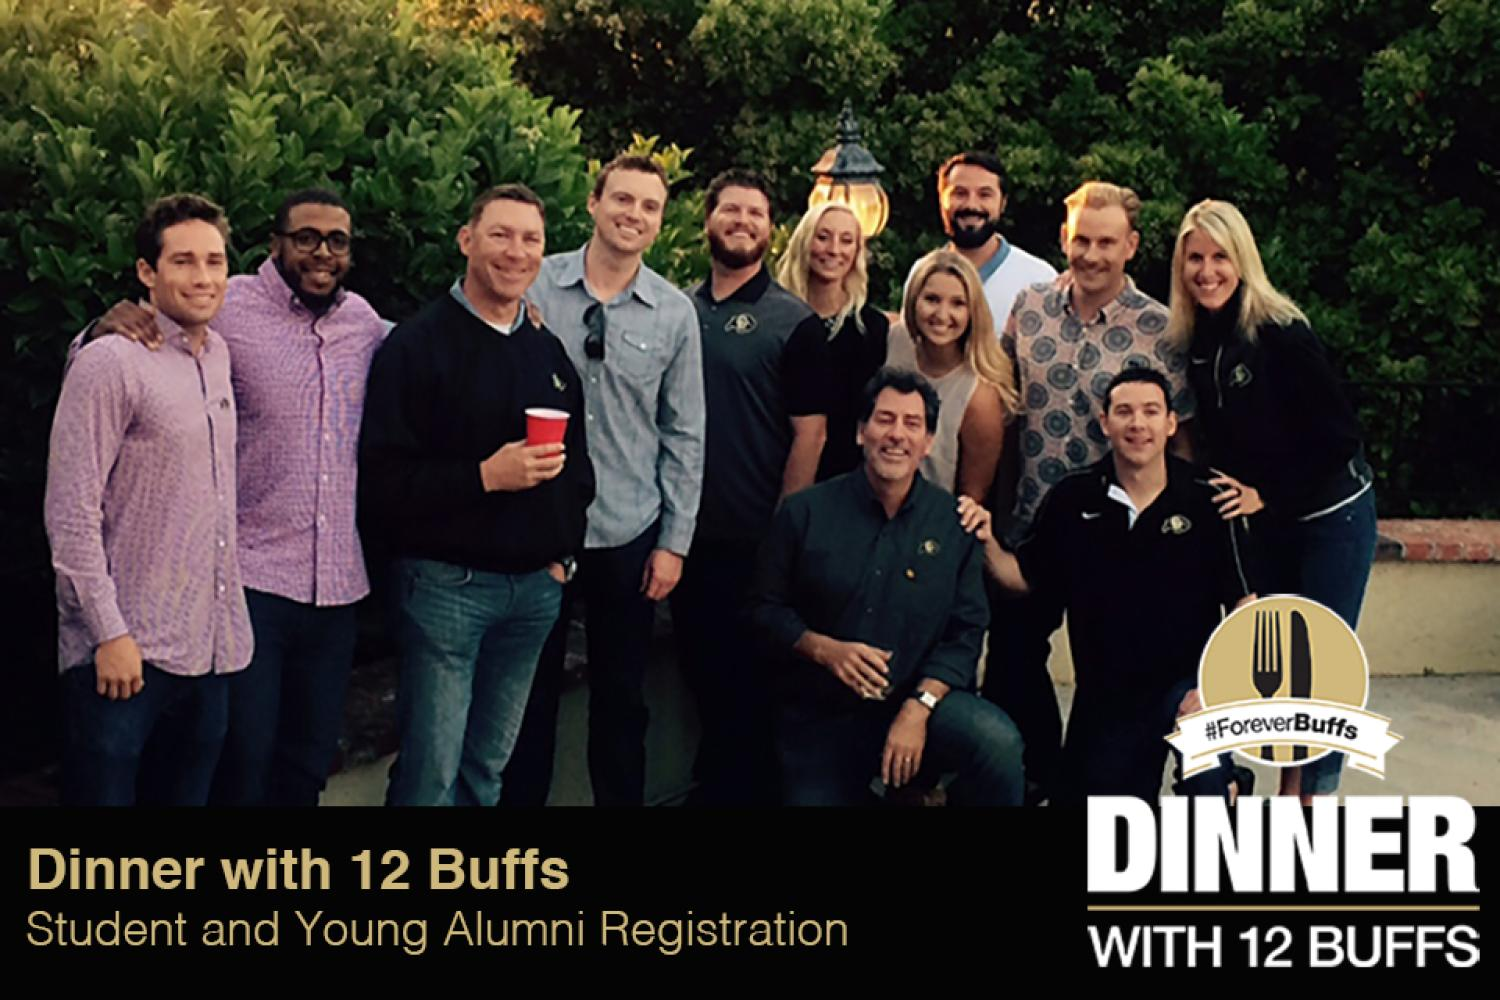 Dinner with 12 Buffs - Student and young alumni